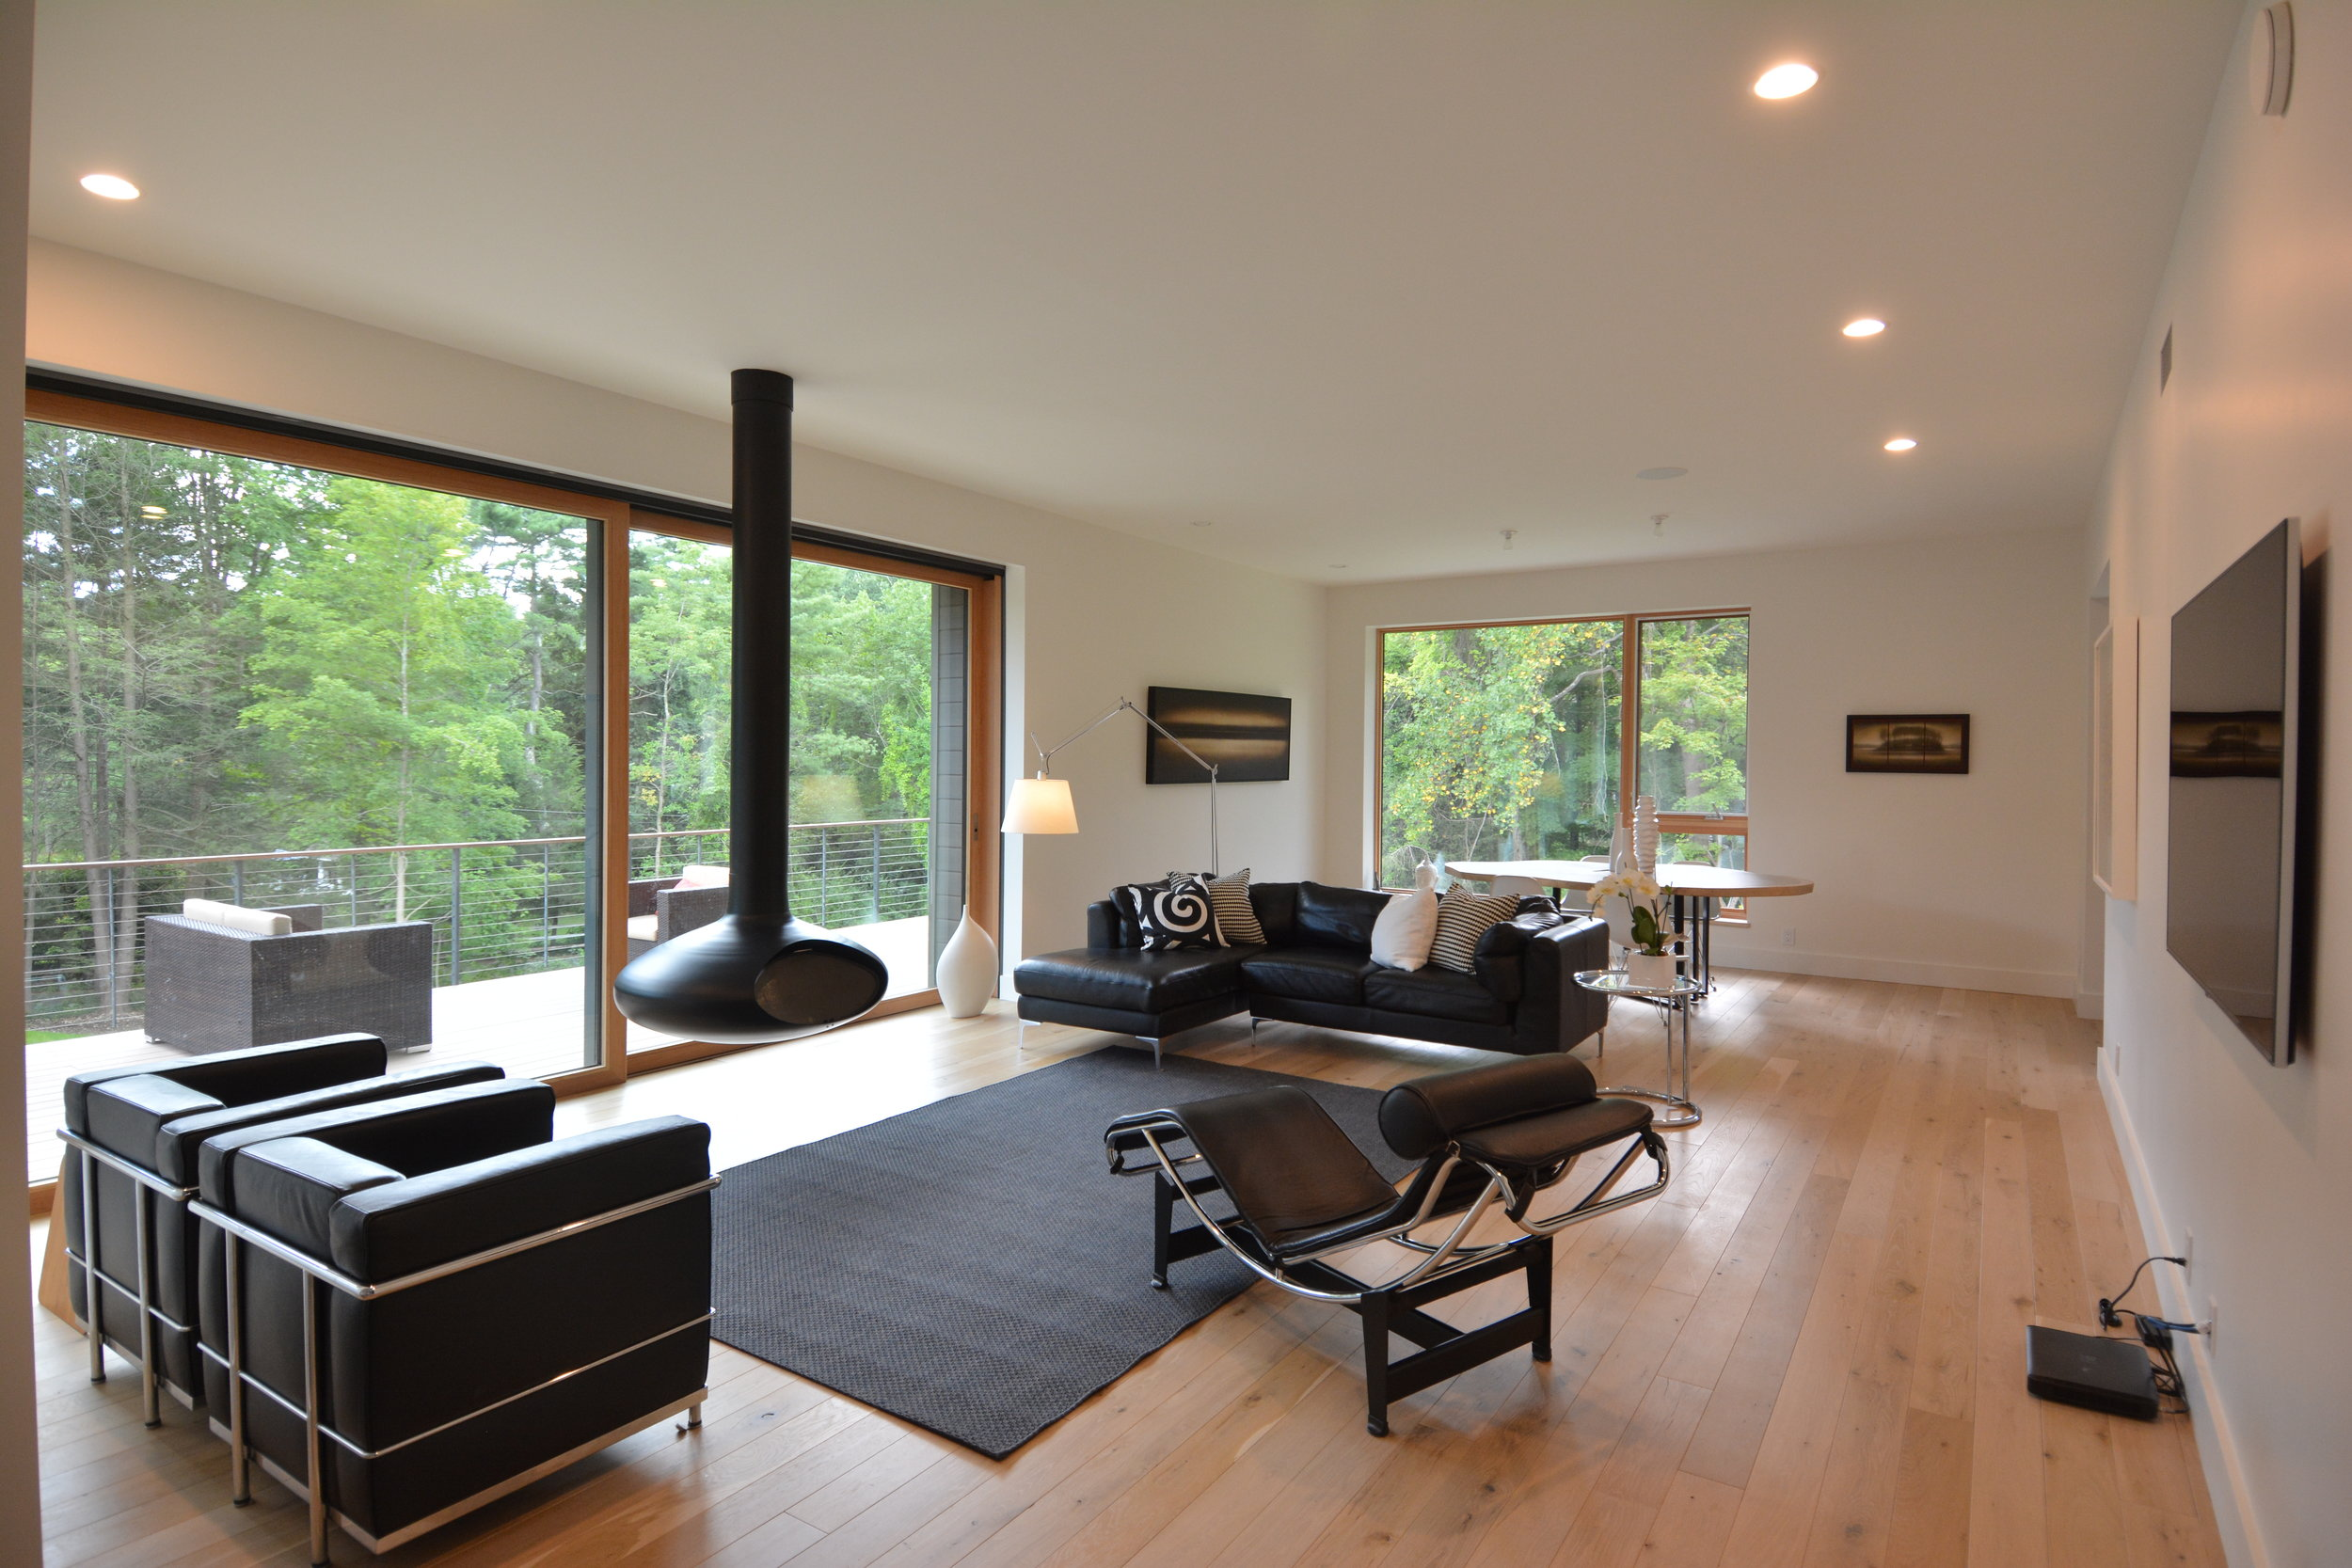 Living room with large sliding doors and suspended fireplace